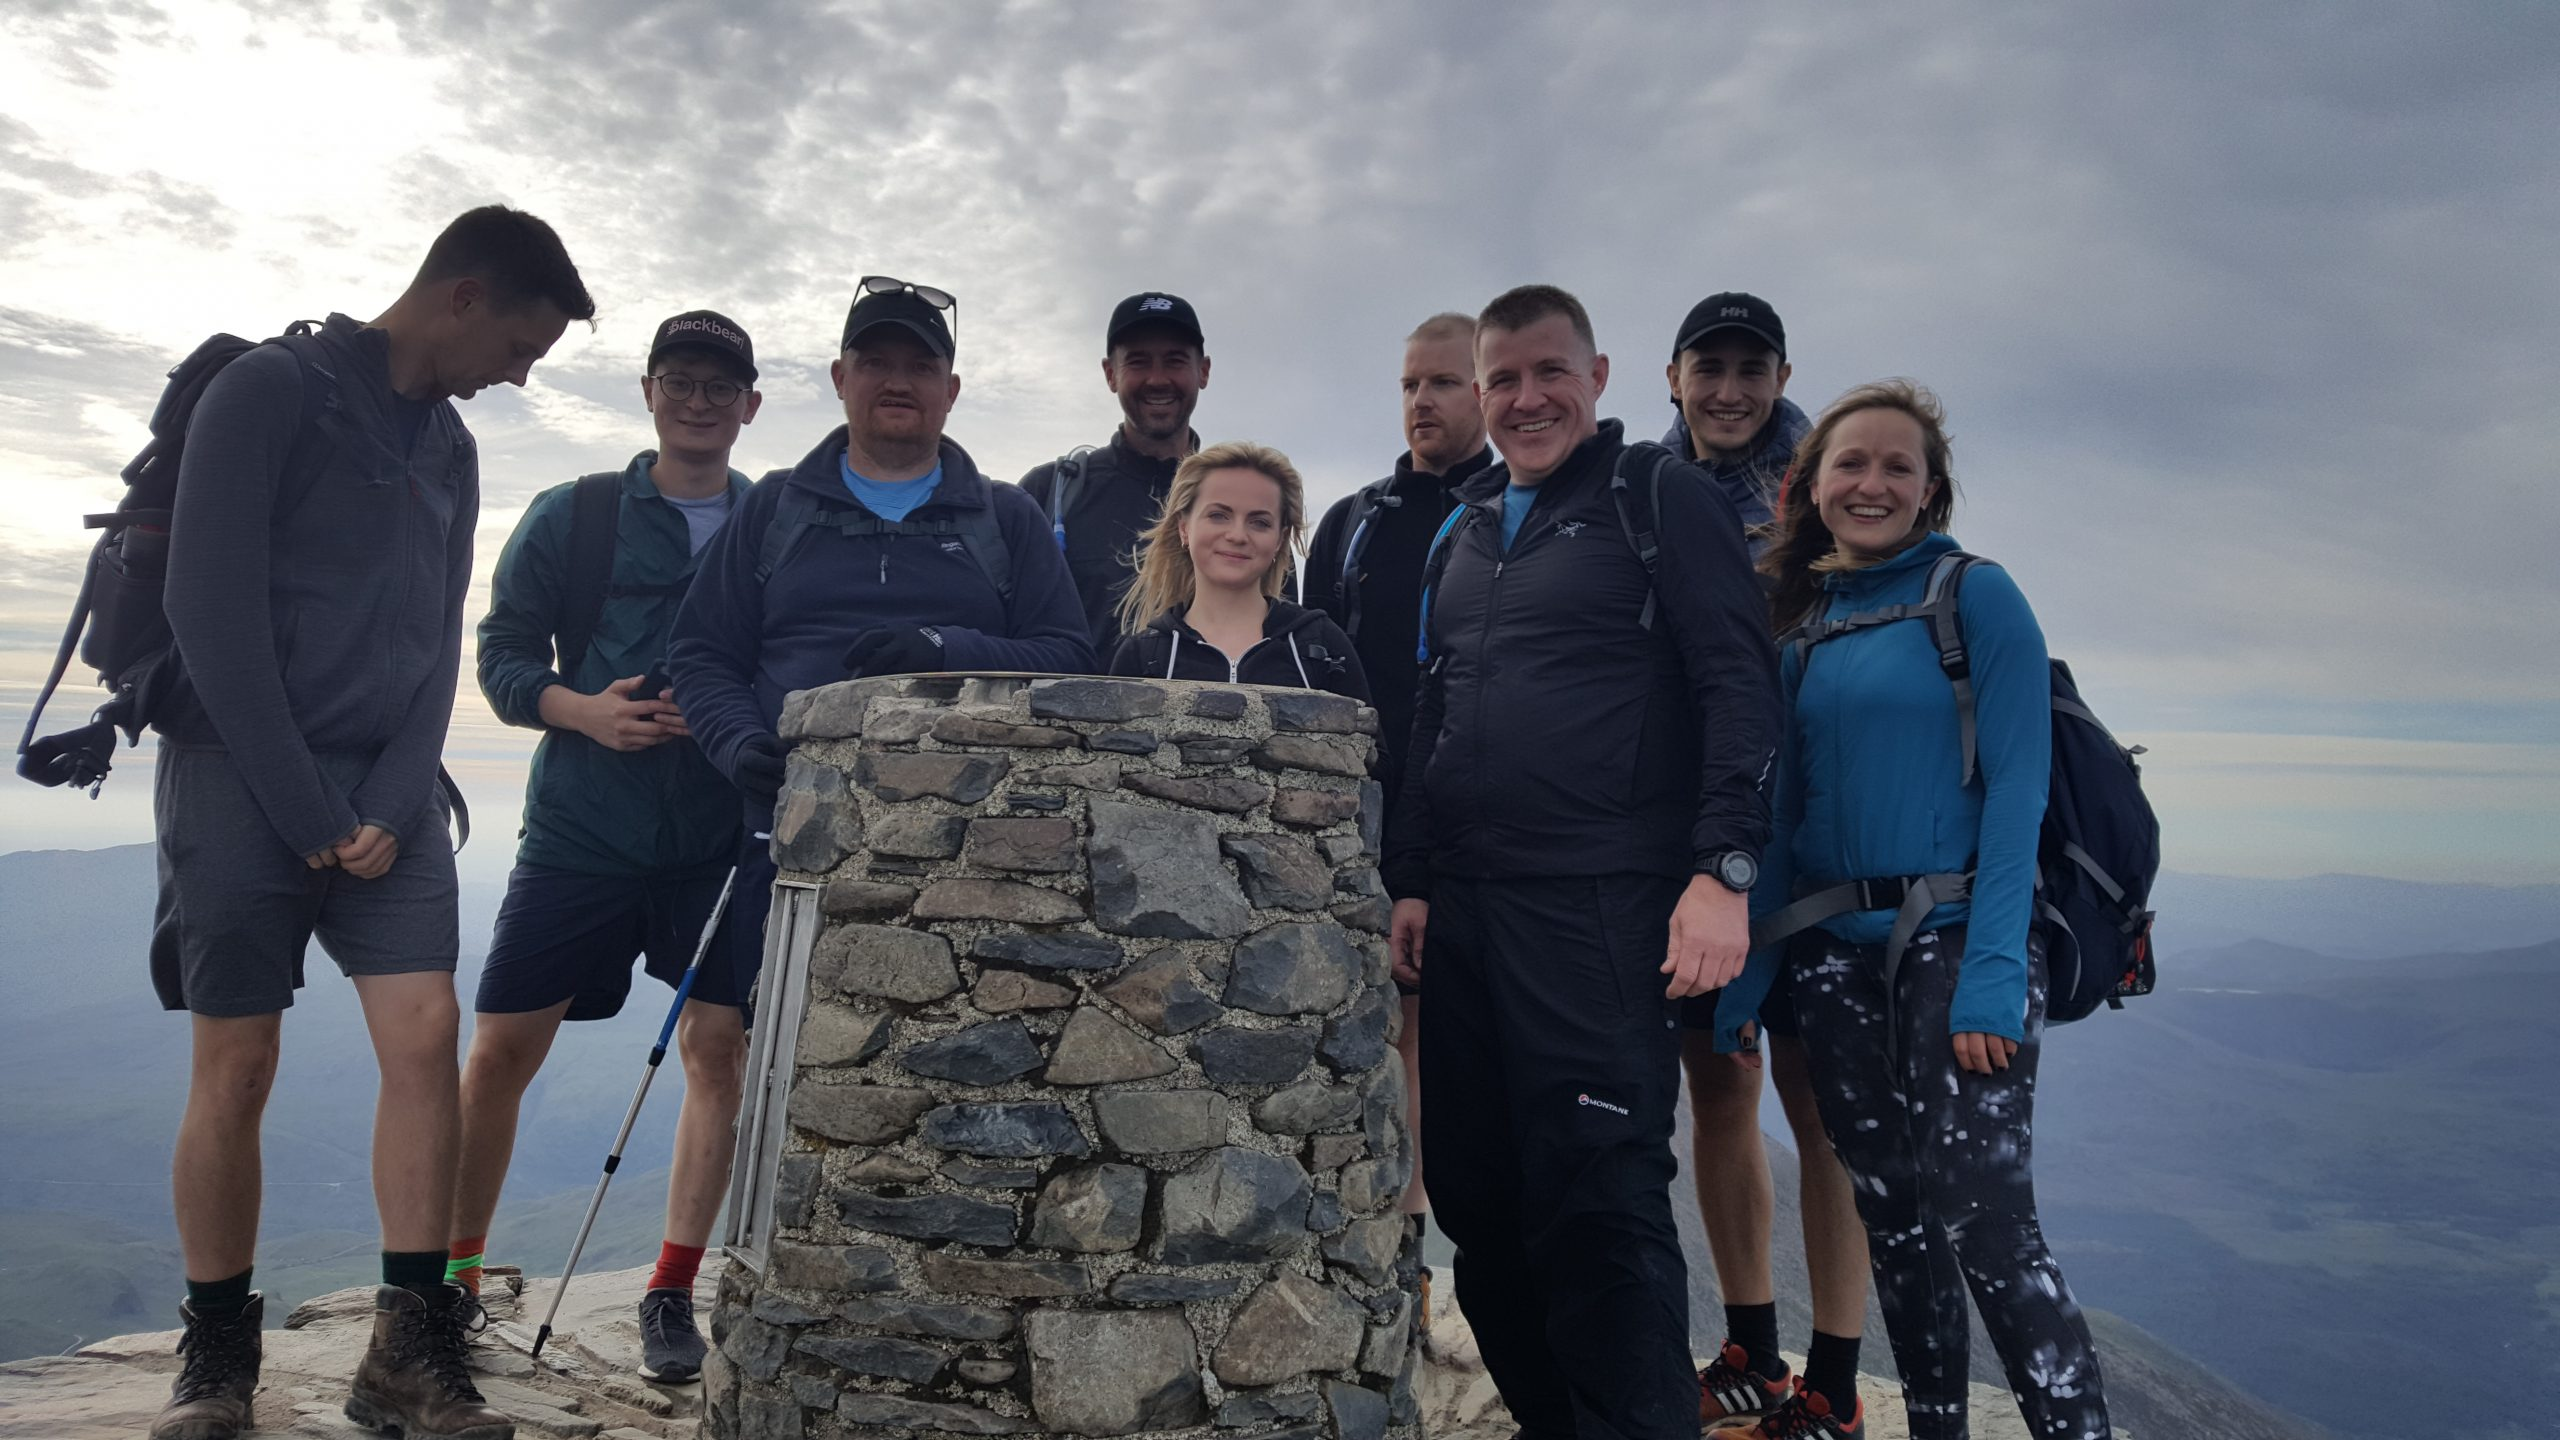 Snowdon summit with a group on a 3 peaks event